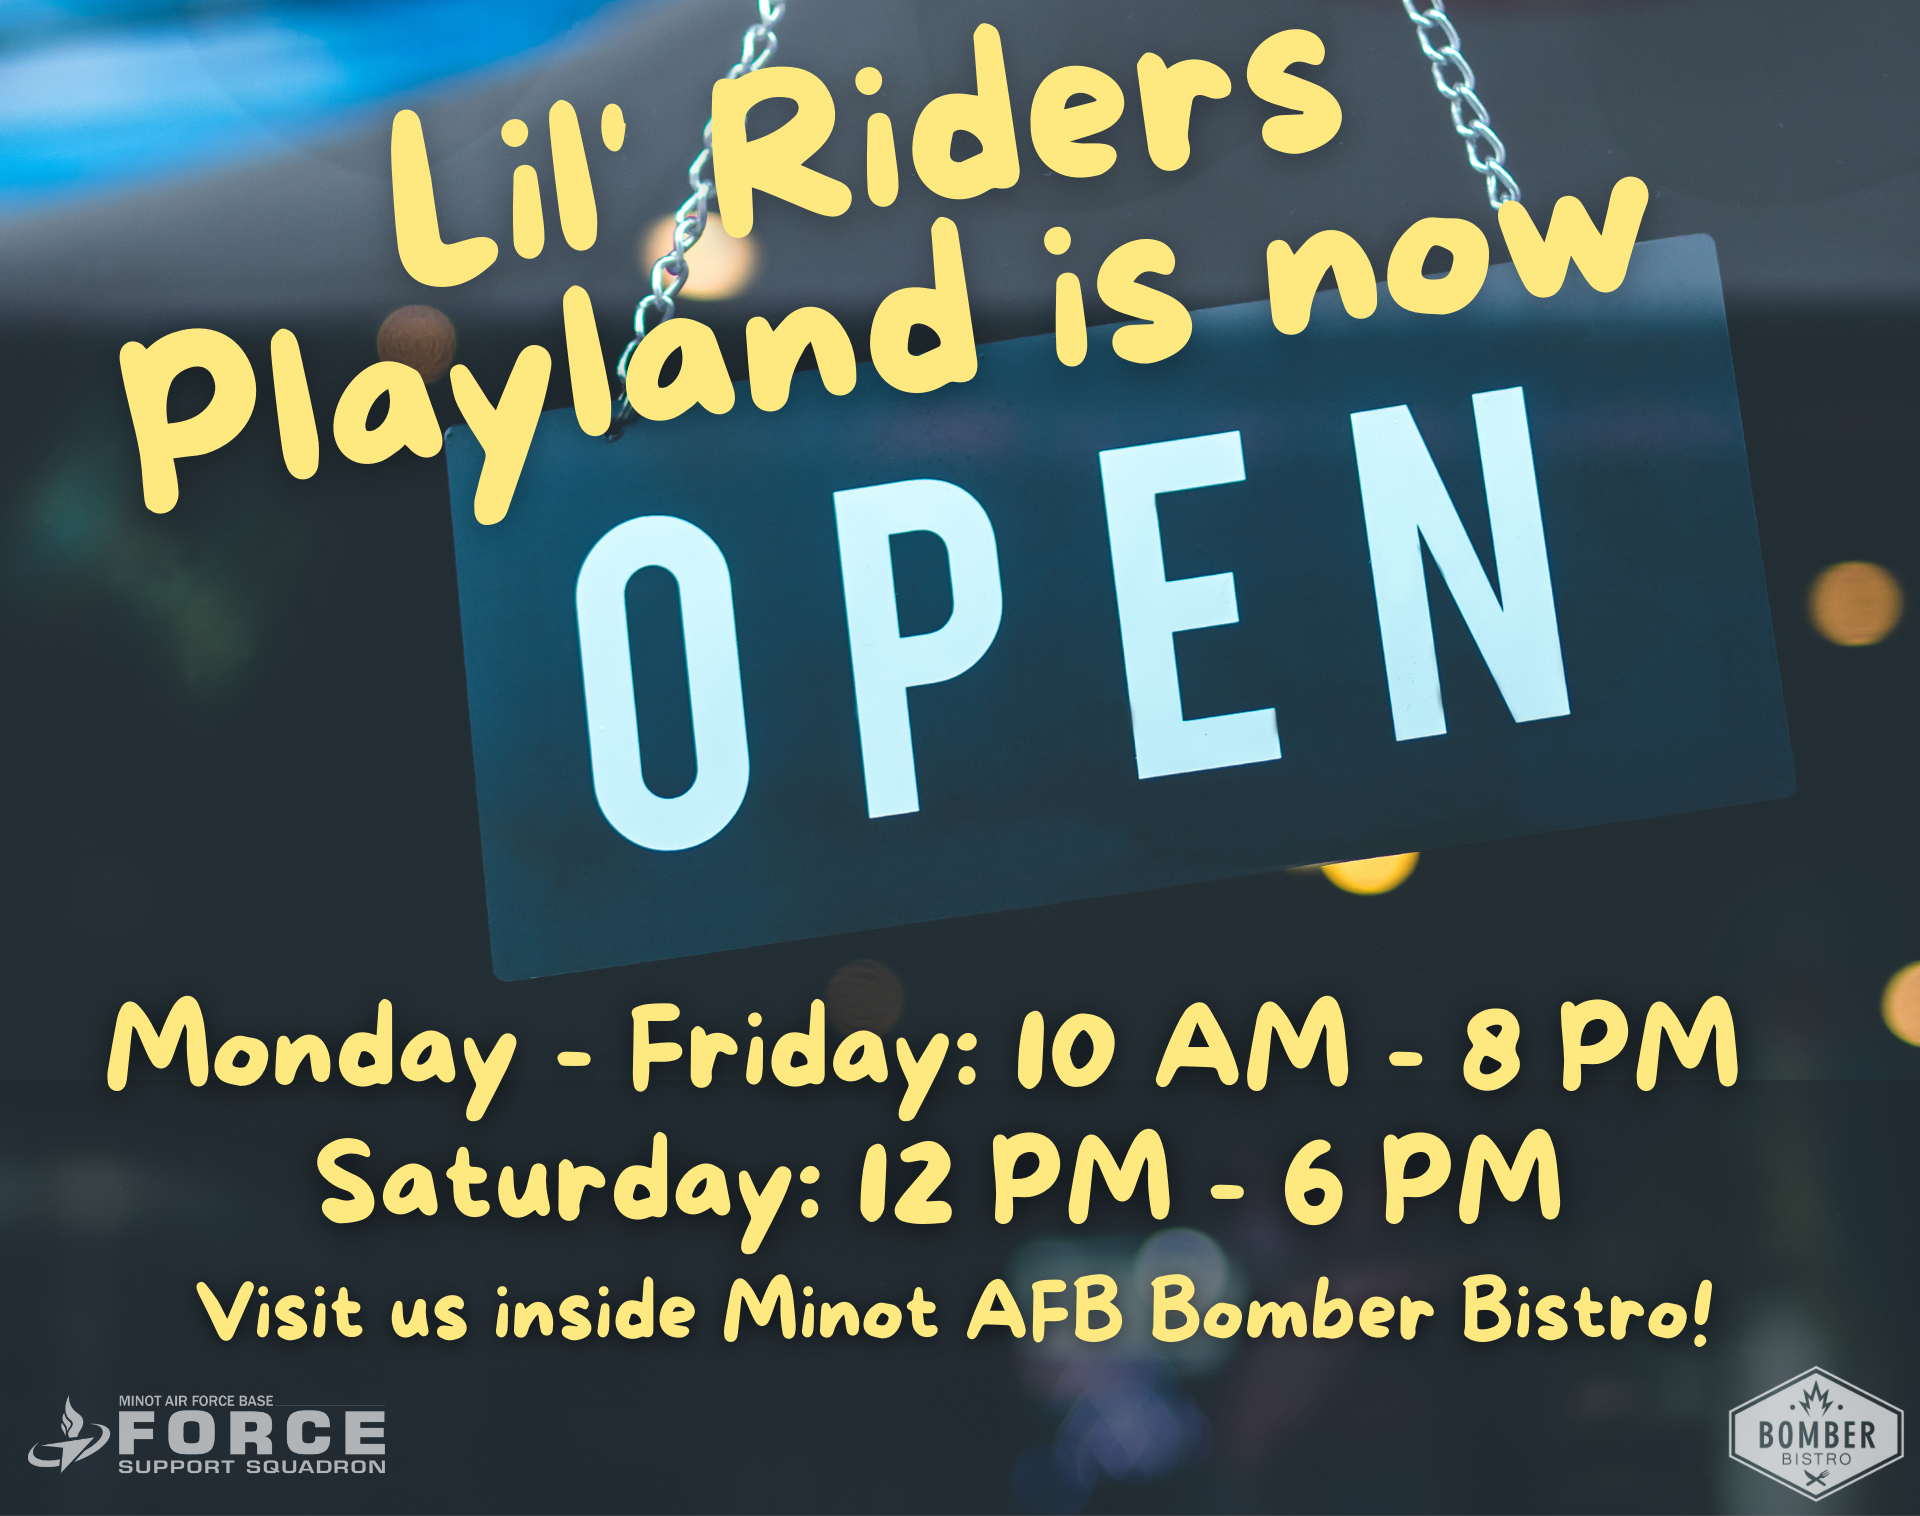 Lil Riders Open